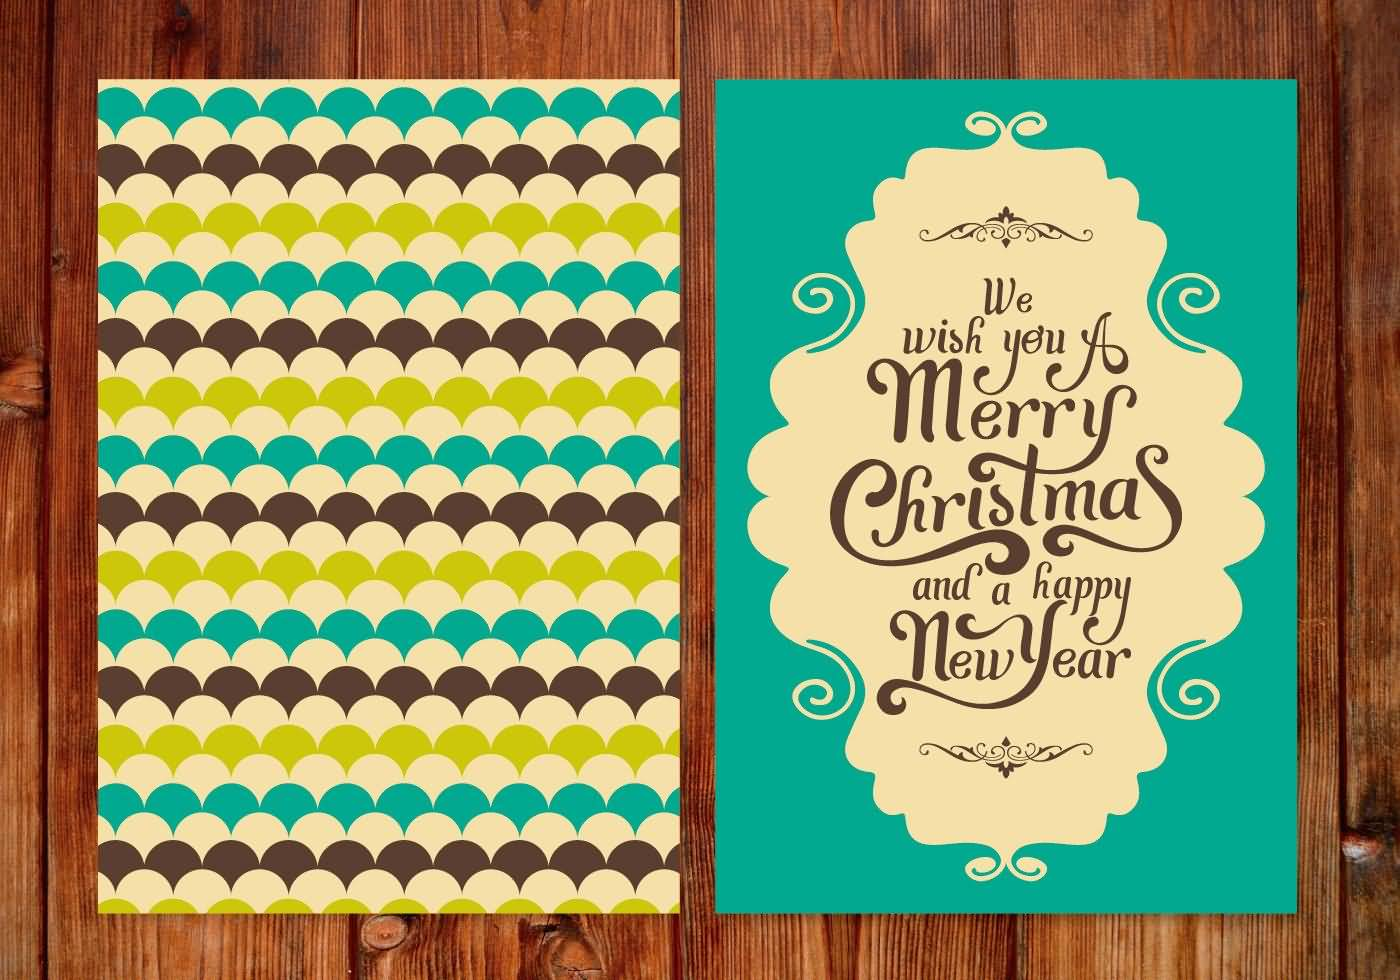 Christmas Cards Ideas Image Picture Photo Wallpaper 14